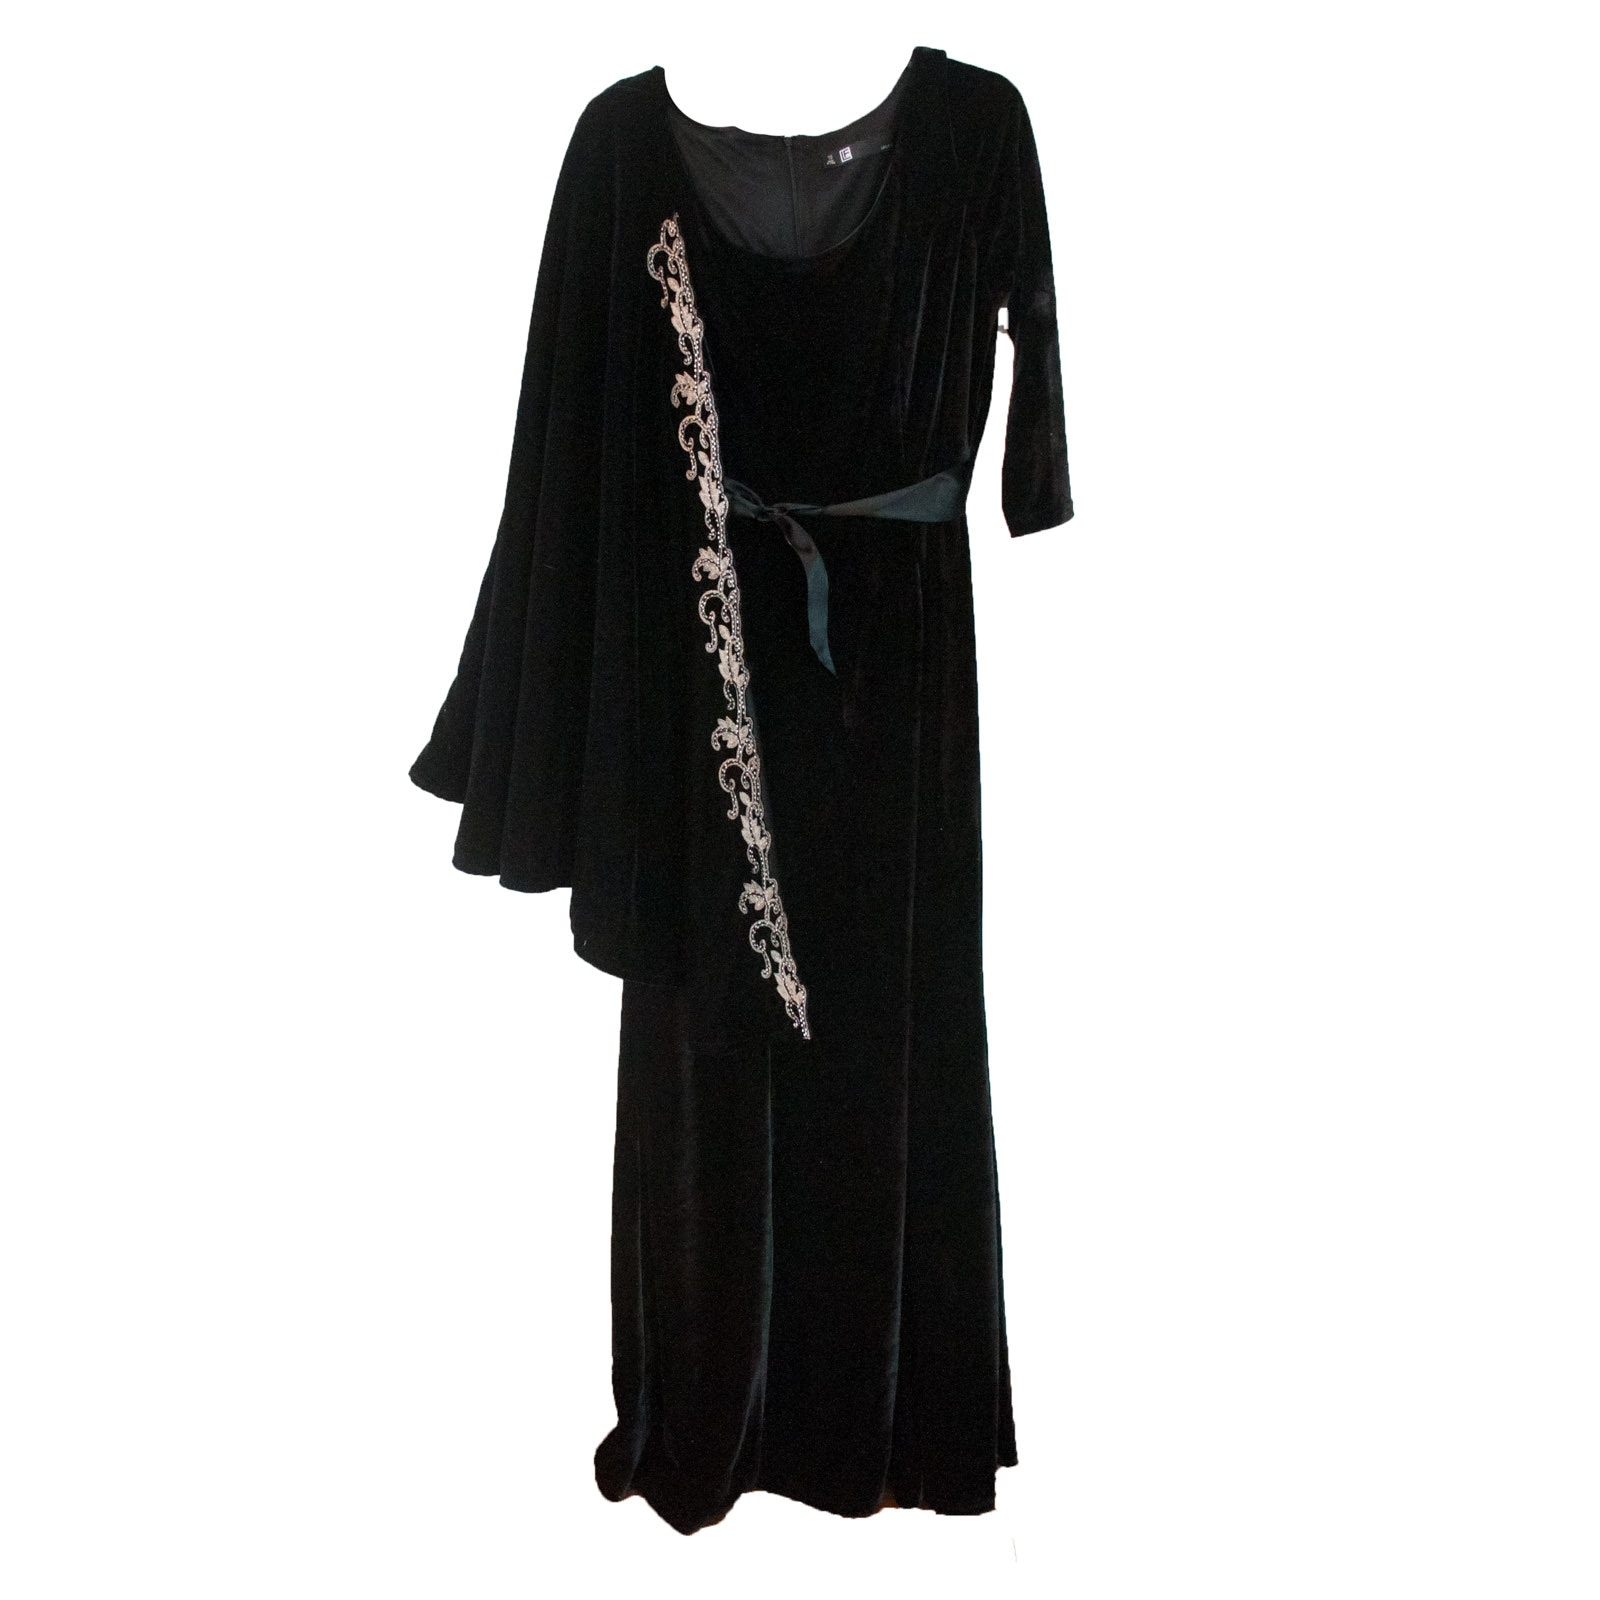 Leslie Fay Black Velvet Gown with Beaded Cardigan by Reba